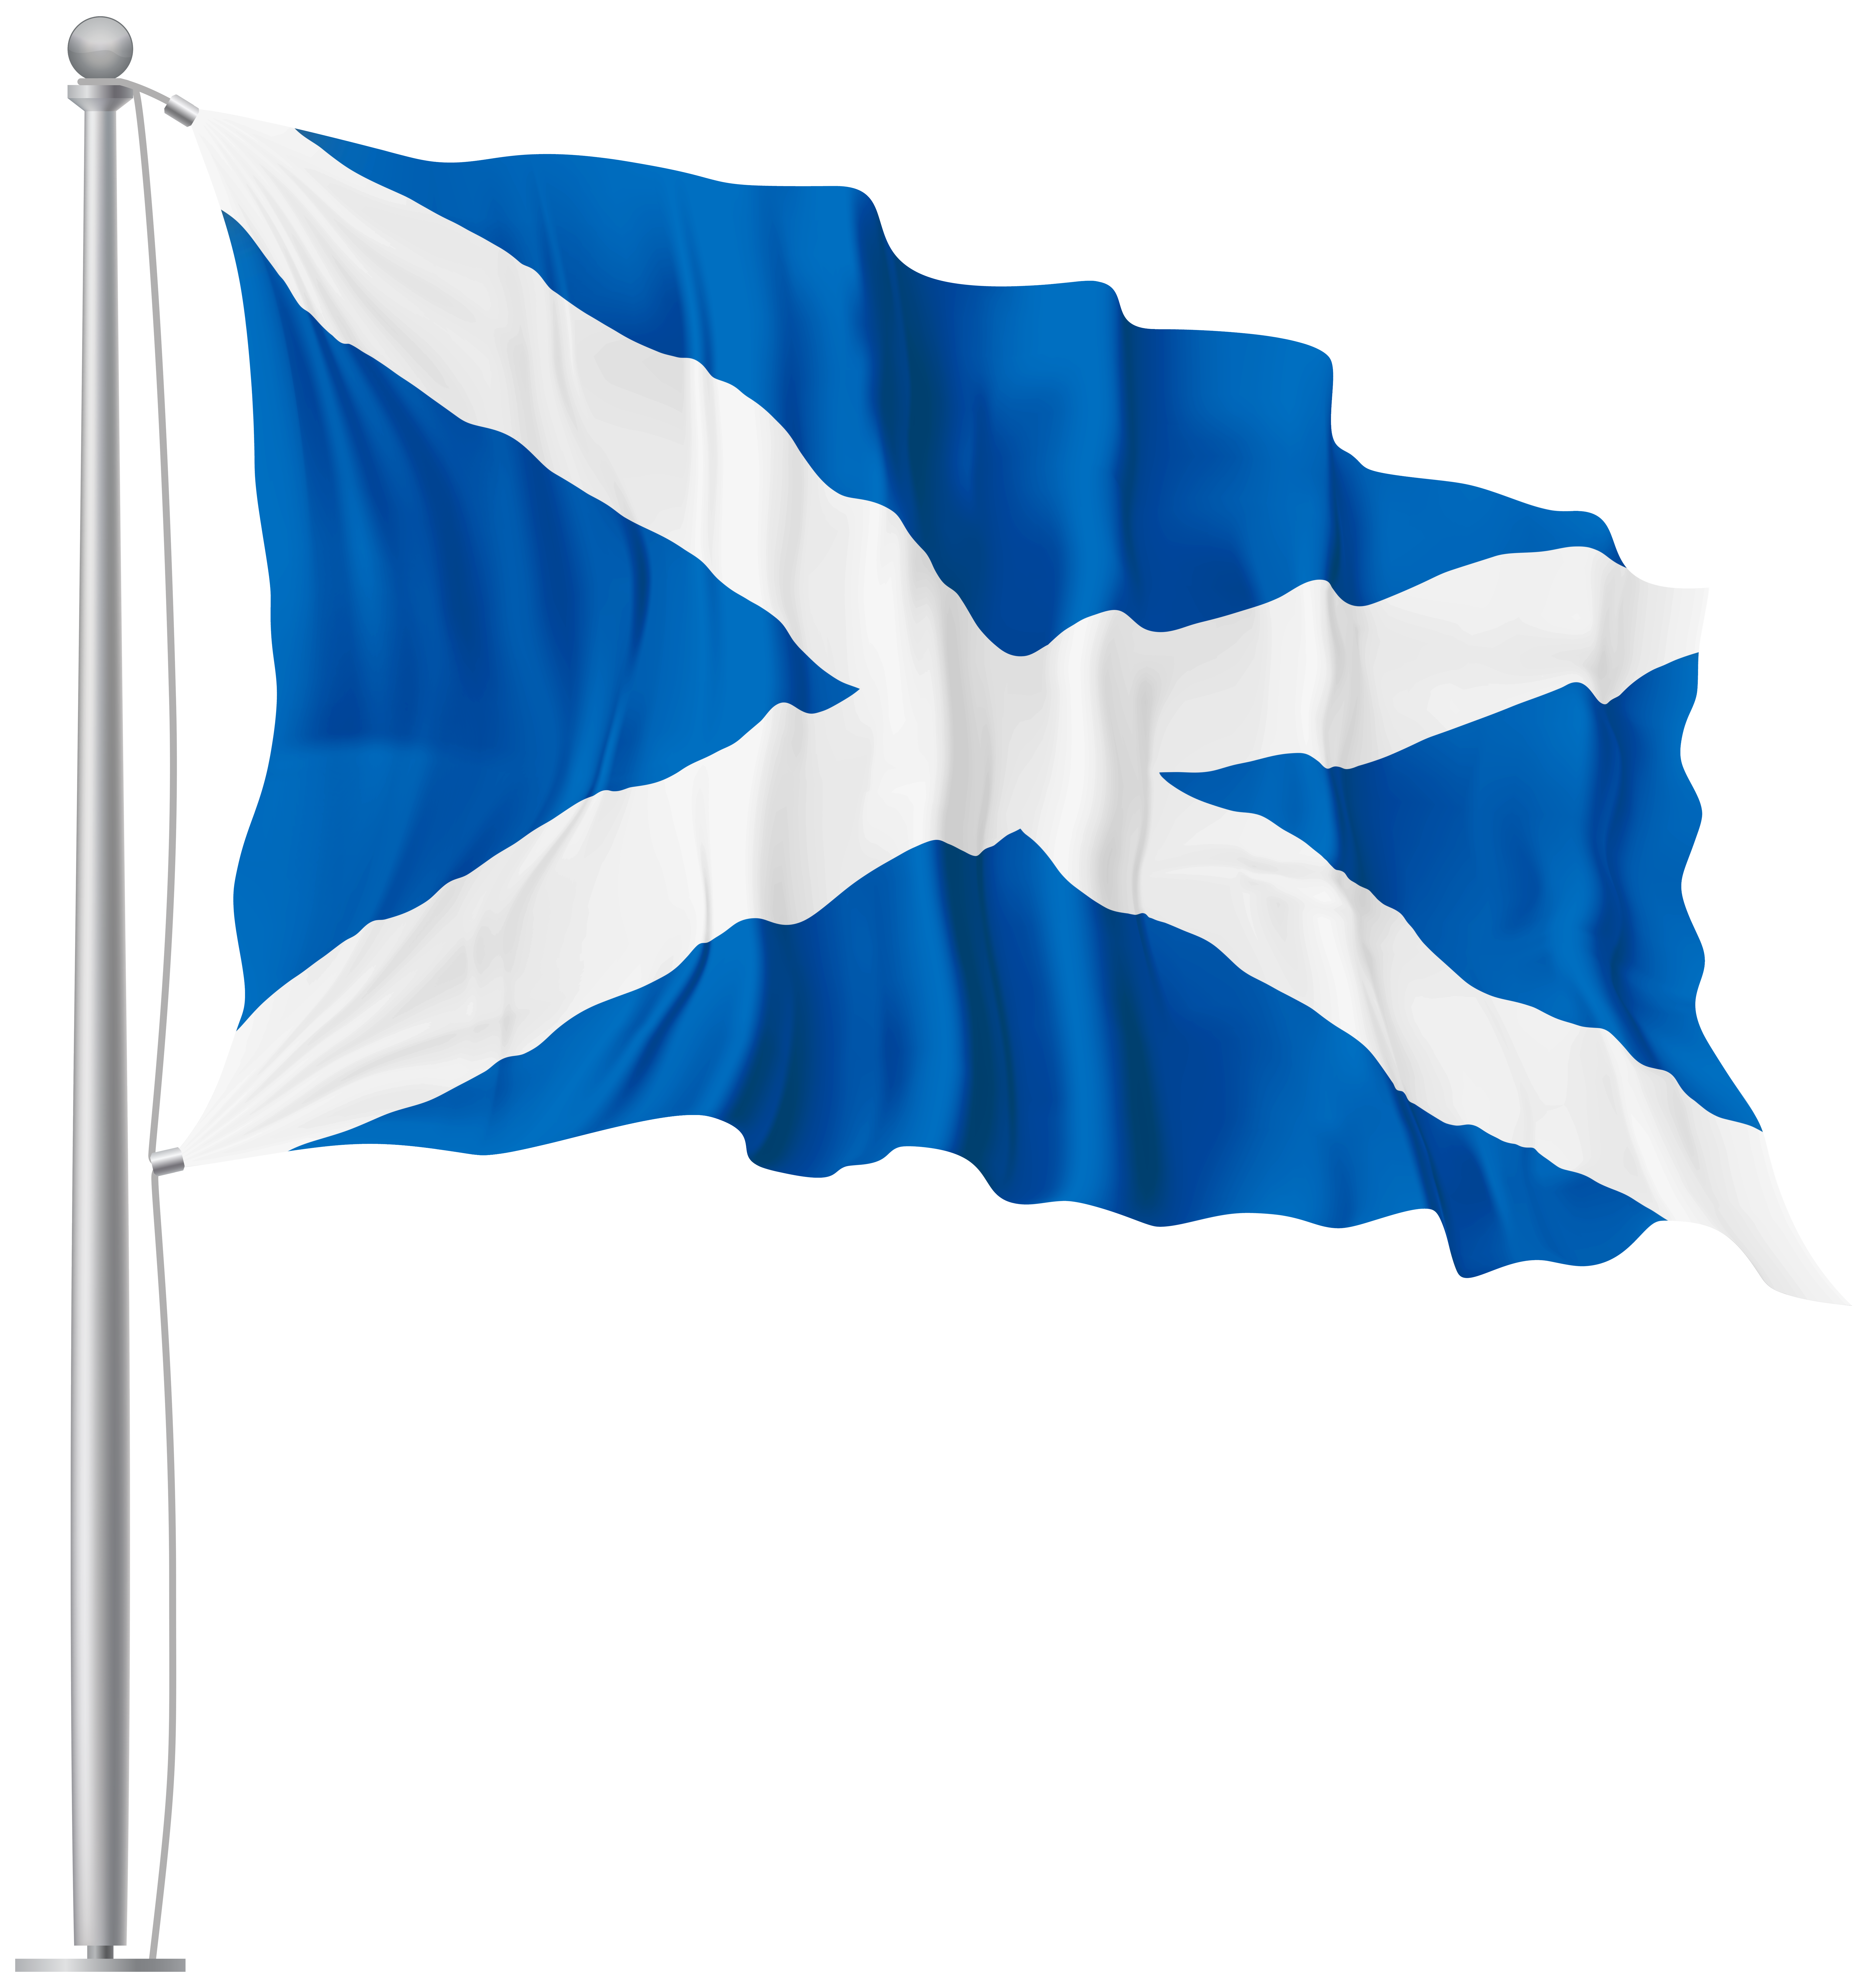 Scotland St Andrew Waving Flag PNG Image.